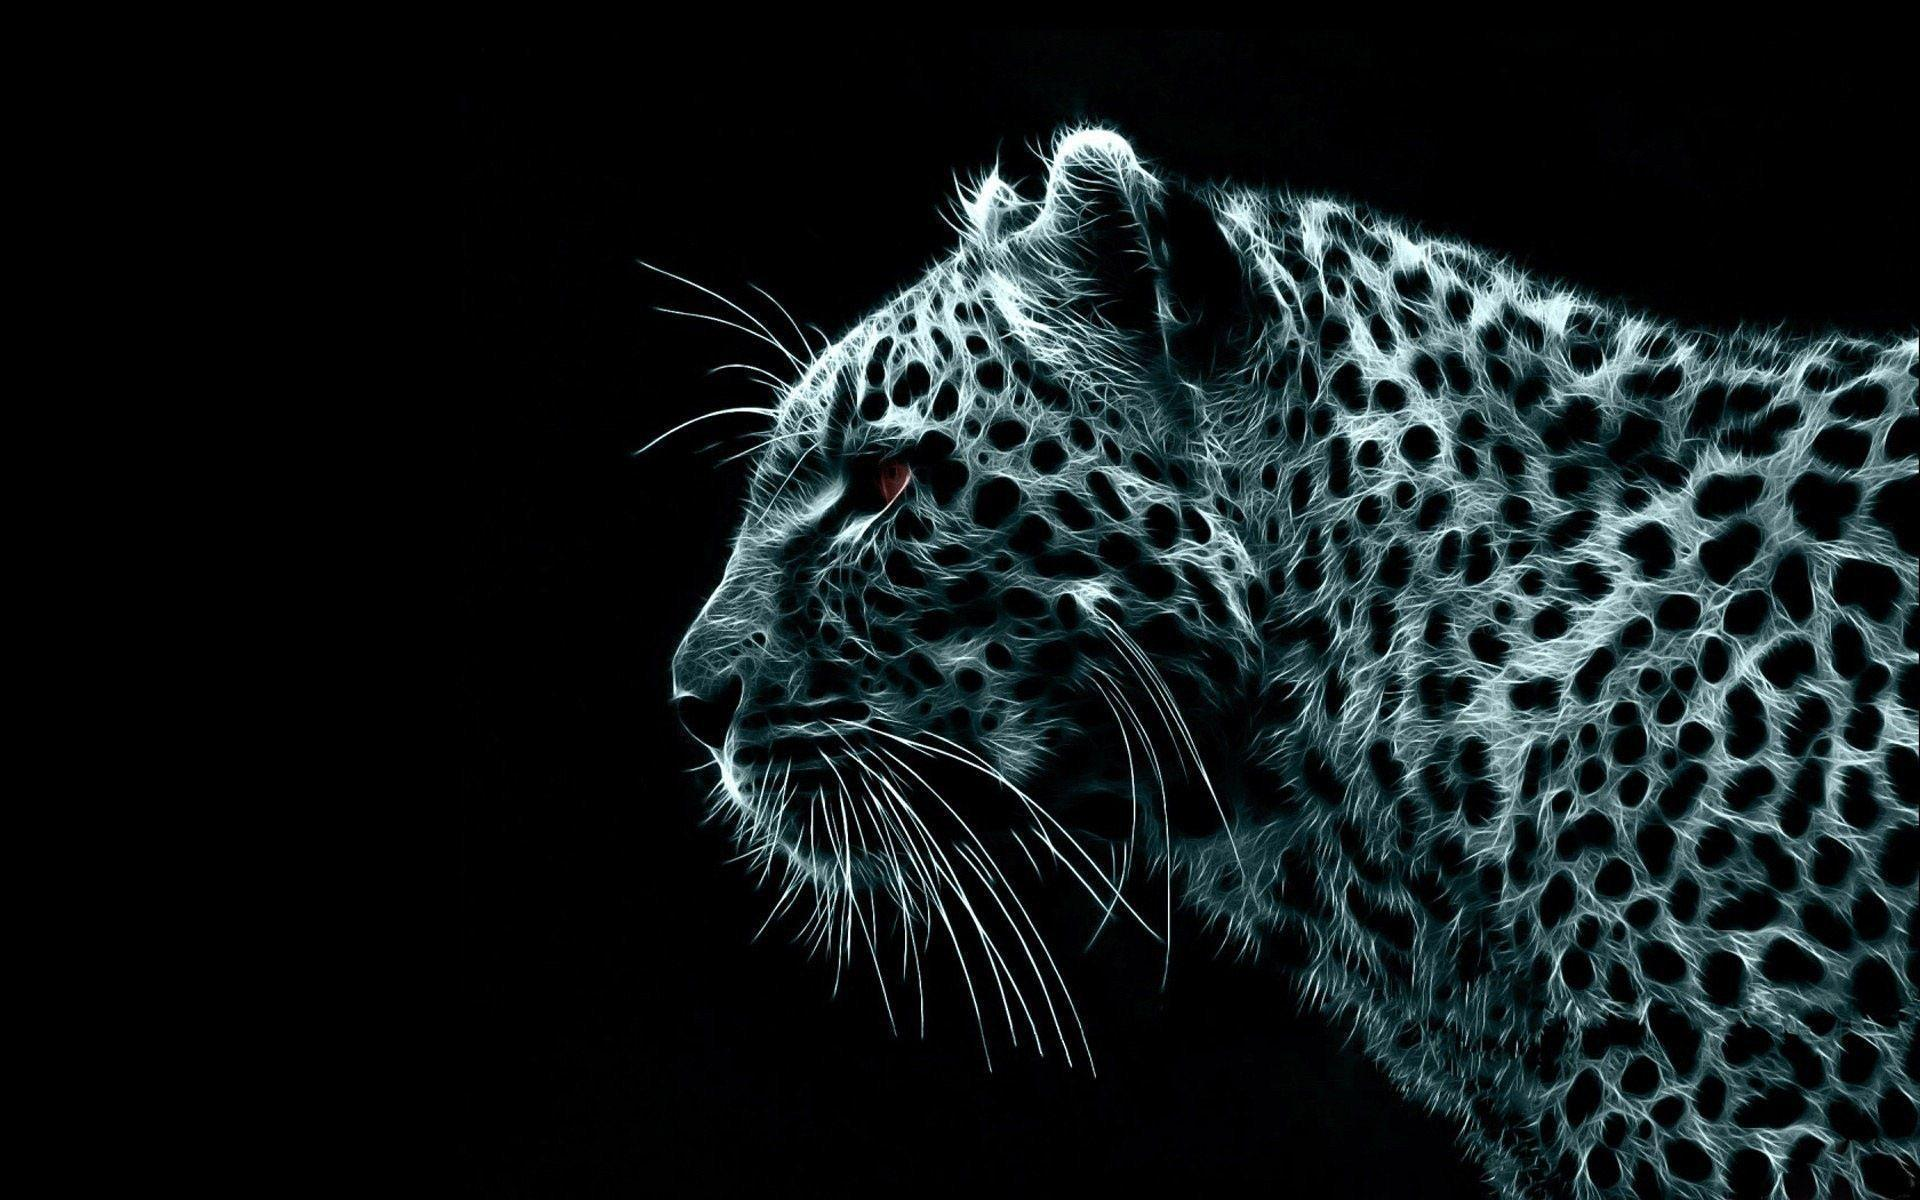 Wonderful Wallpaper Mac Leopard - 9IEsffU  You Should Have_645176.jpg